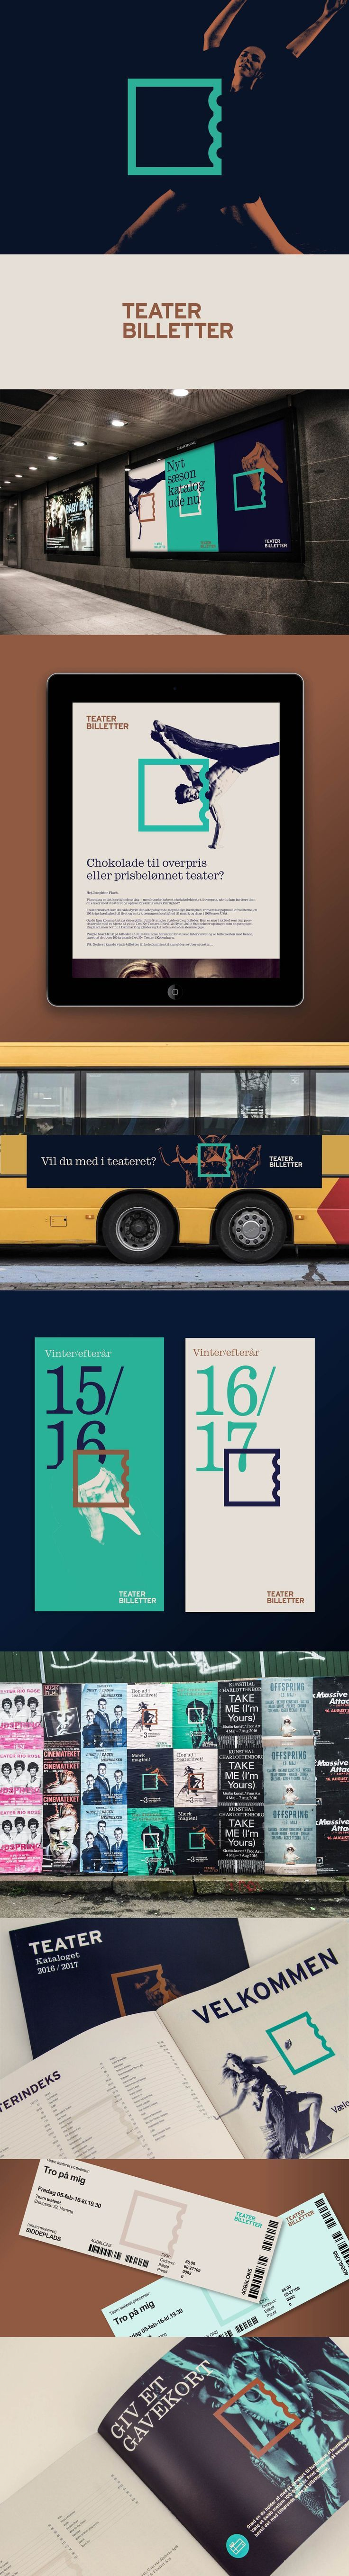 Visual identity for Teaterbilletter by IDna Group. See full case at: https://www.behance.net/gallery/37107273/Teaterbilletter